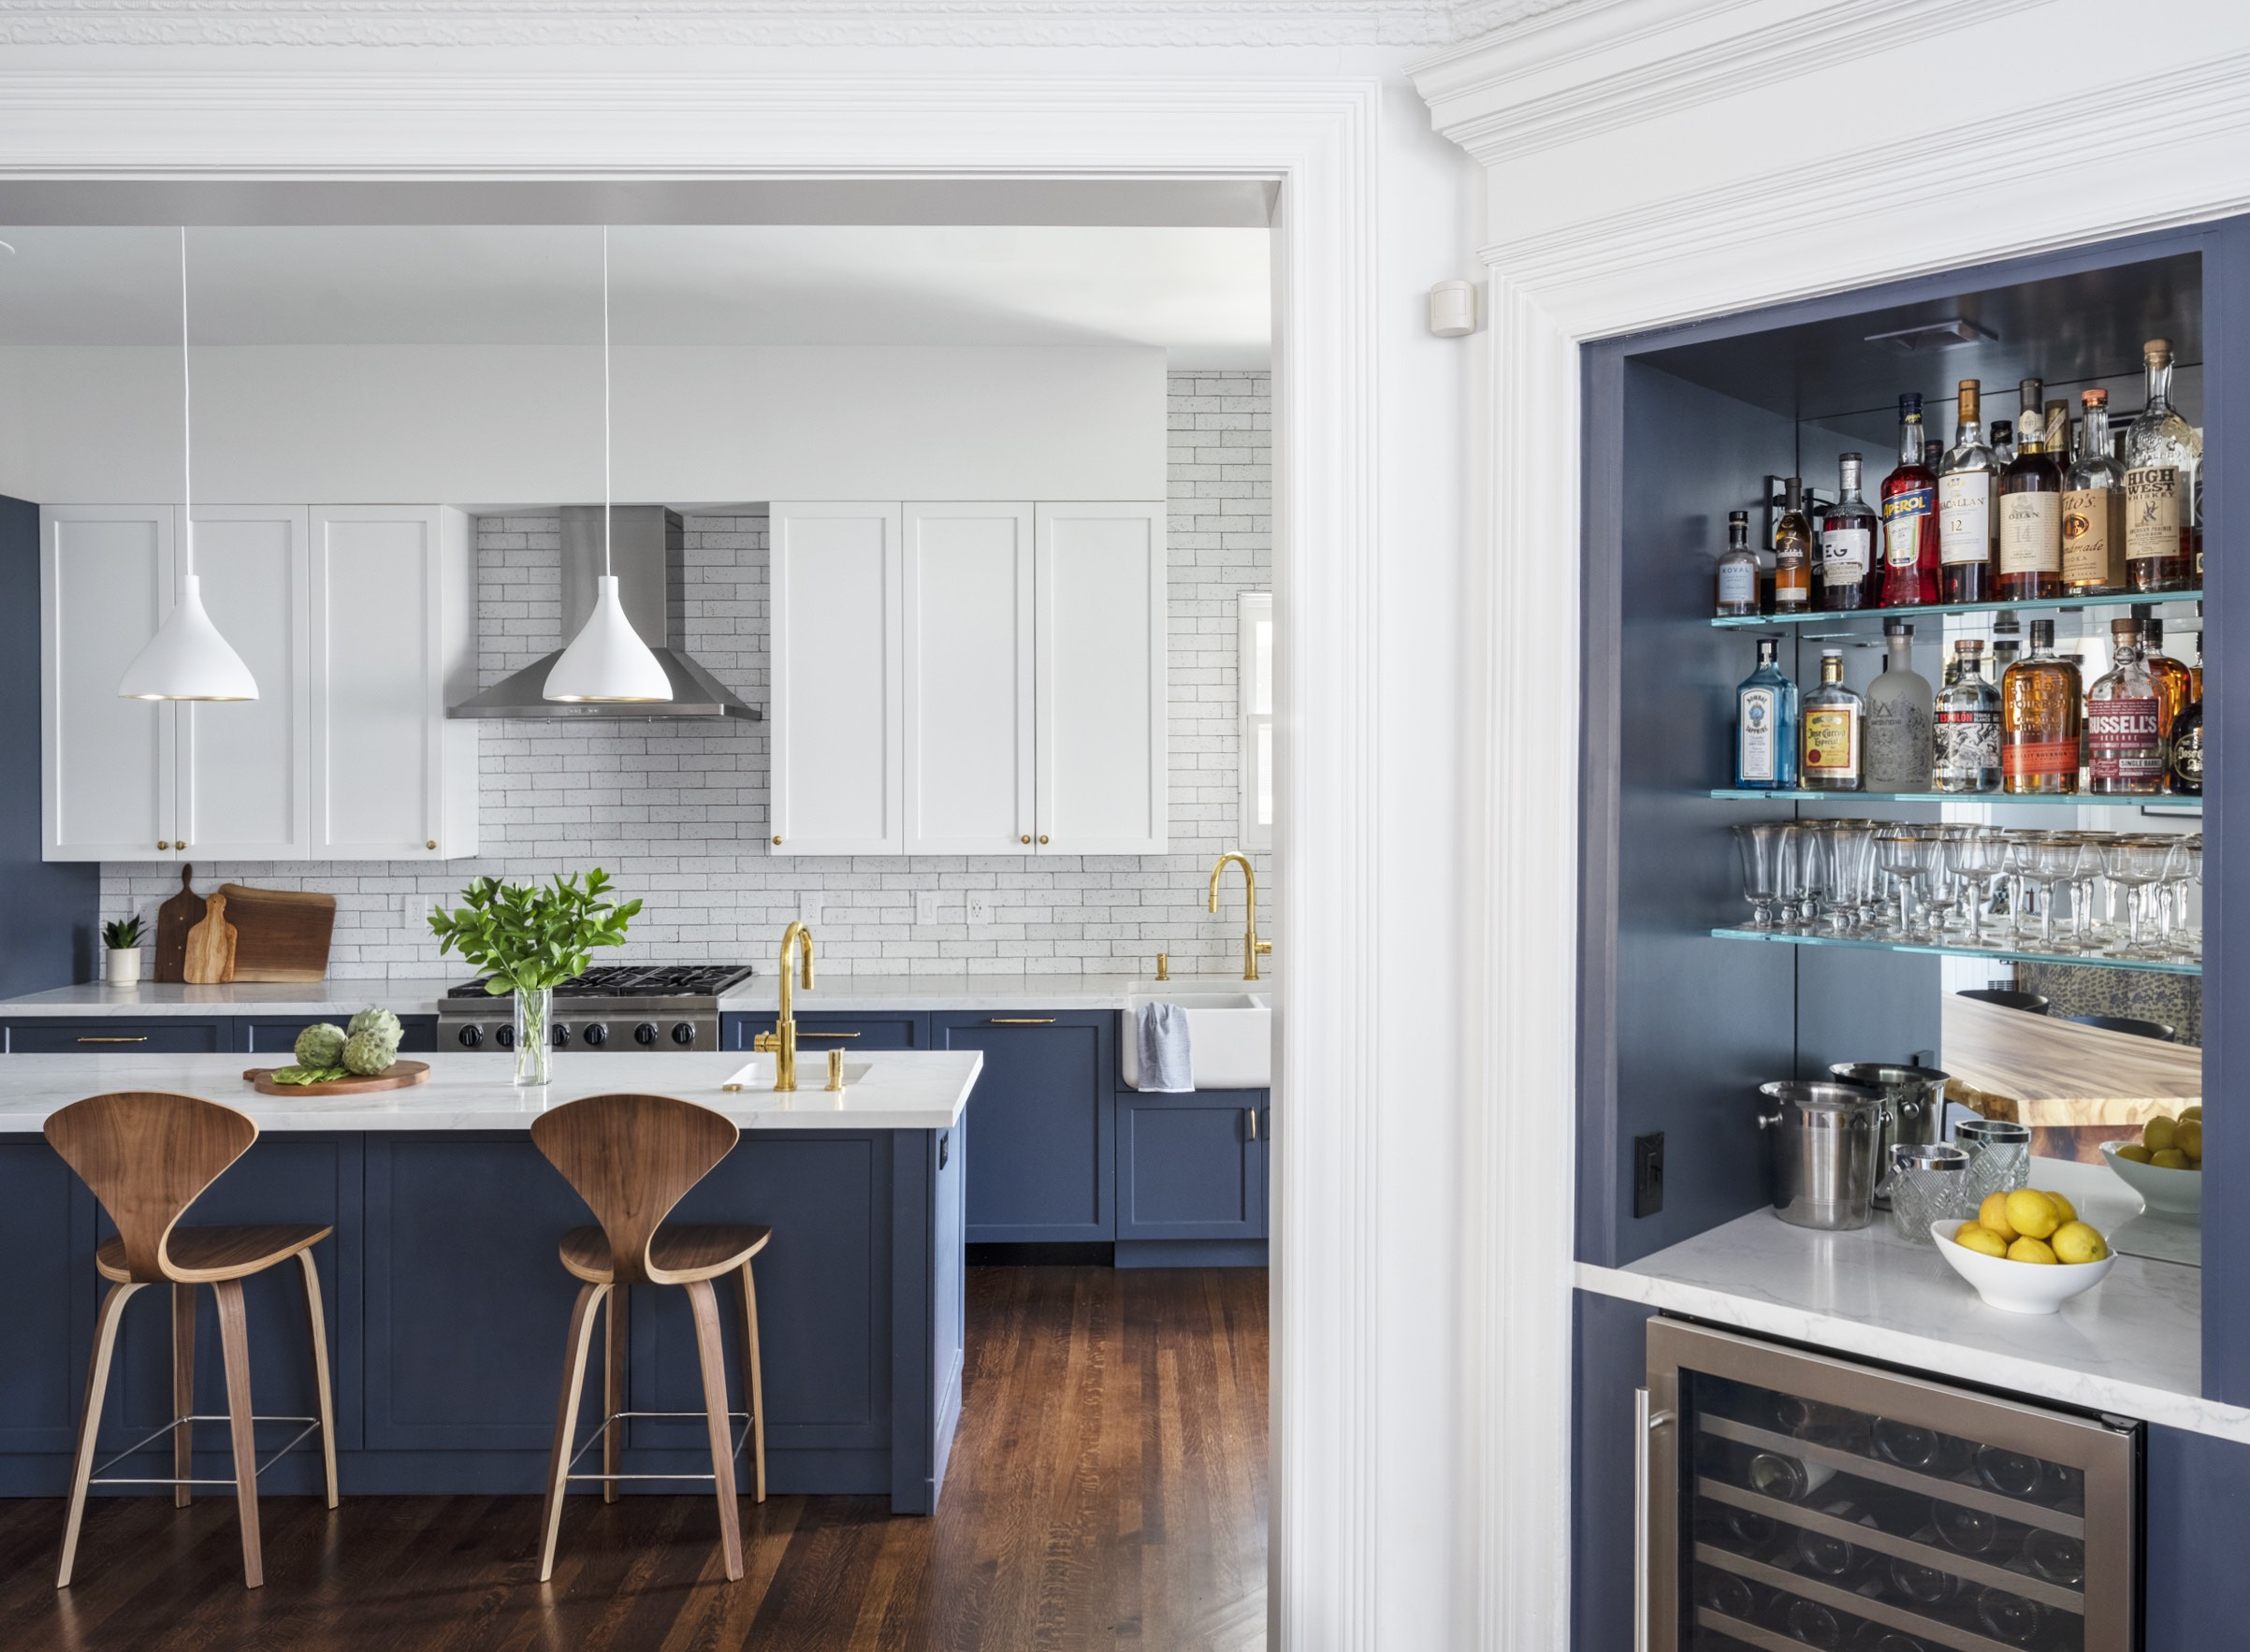 san francisco kitchen remodel blue and white with warm wood and built-in bar.jpg